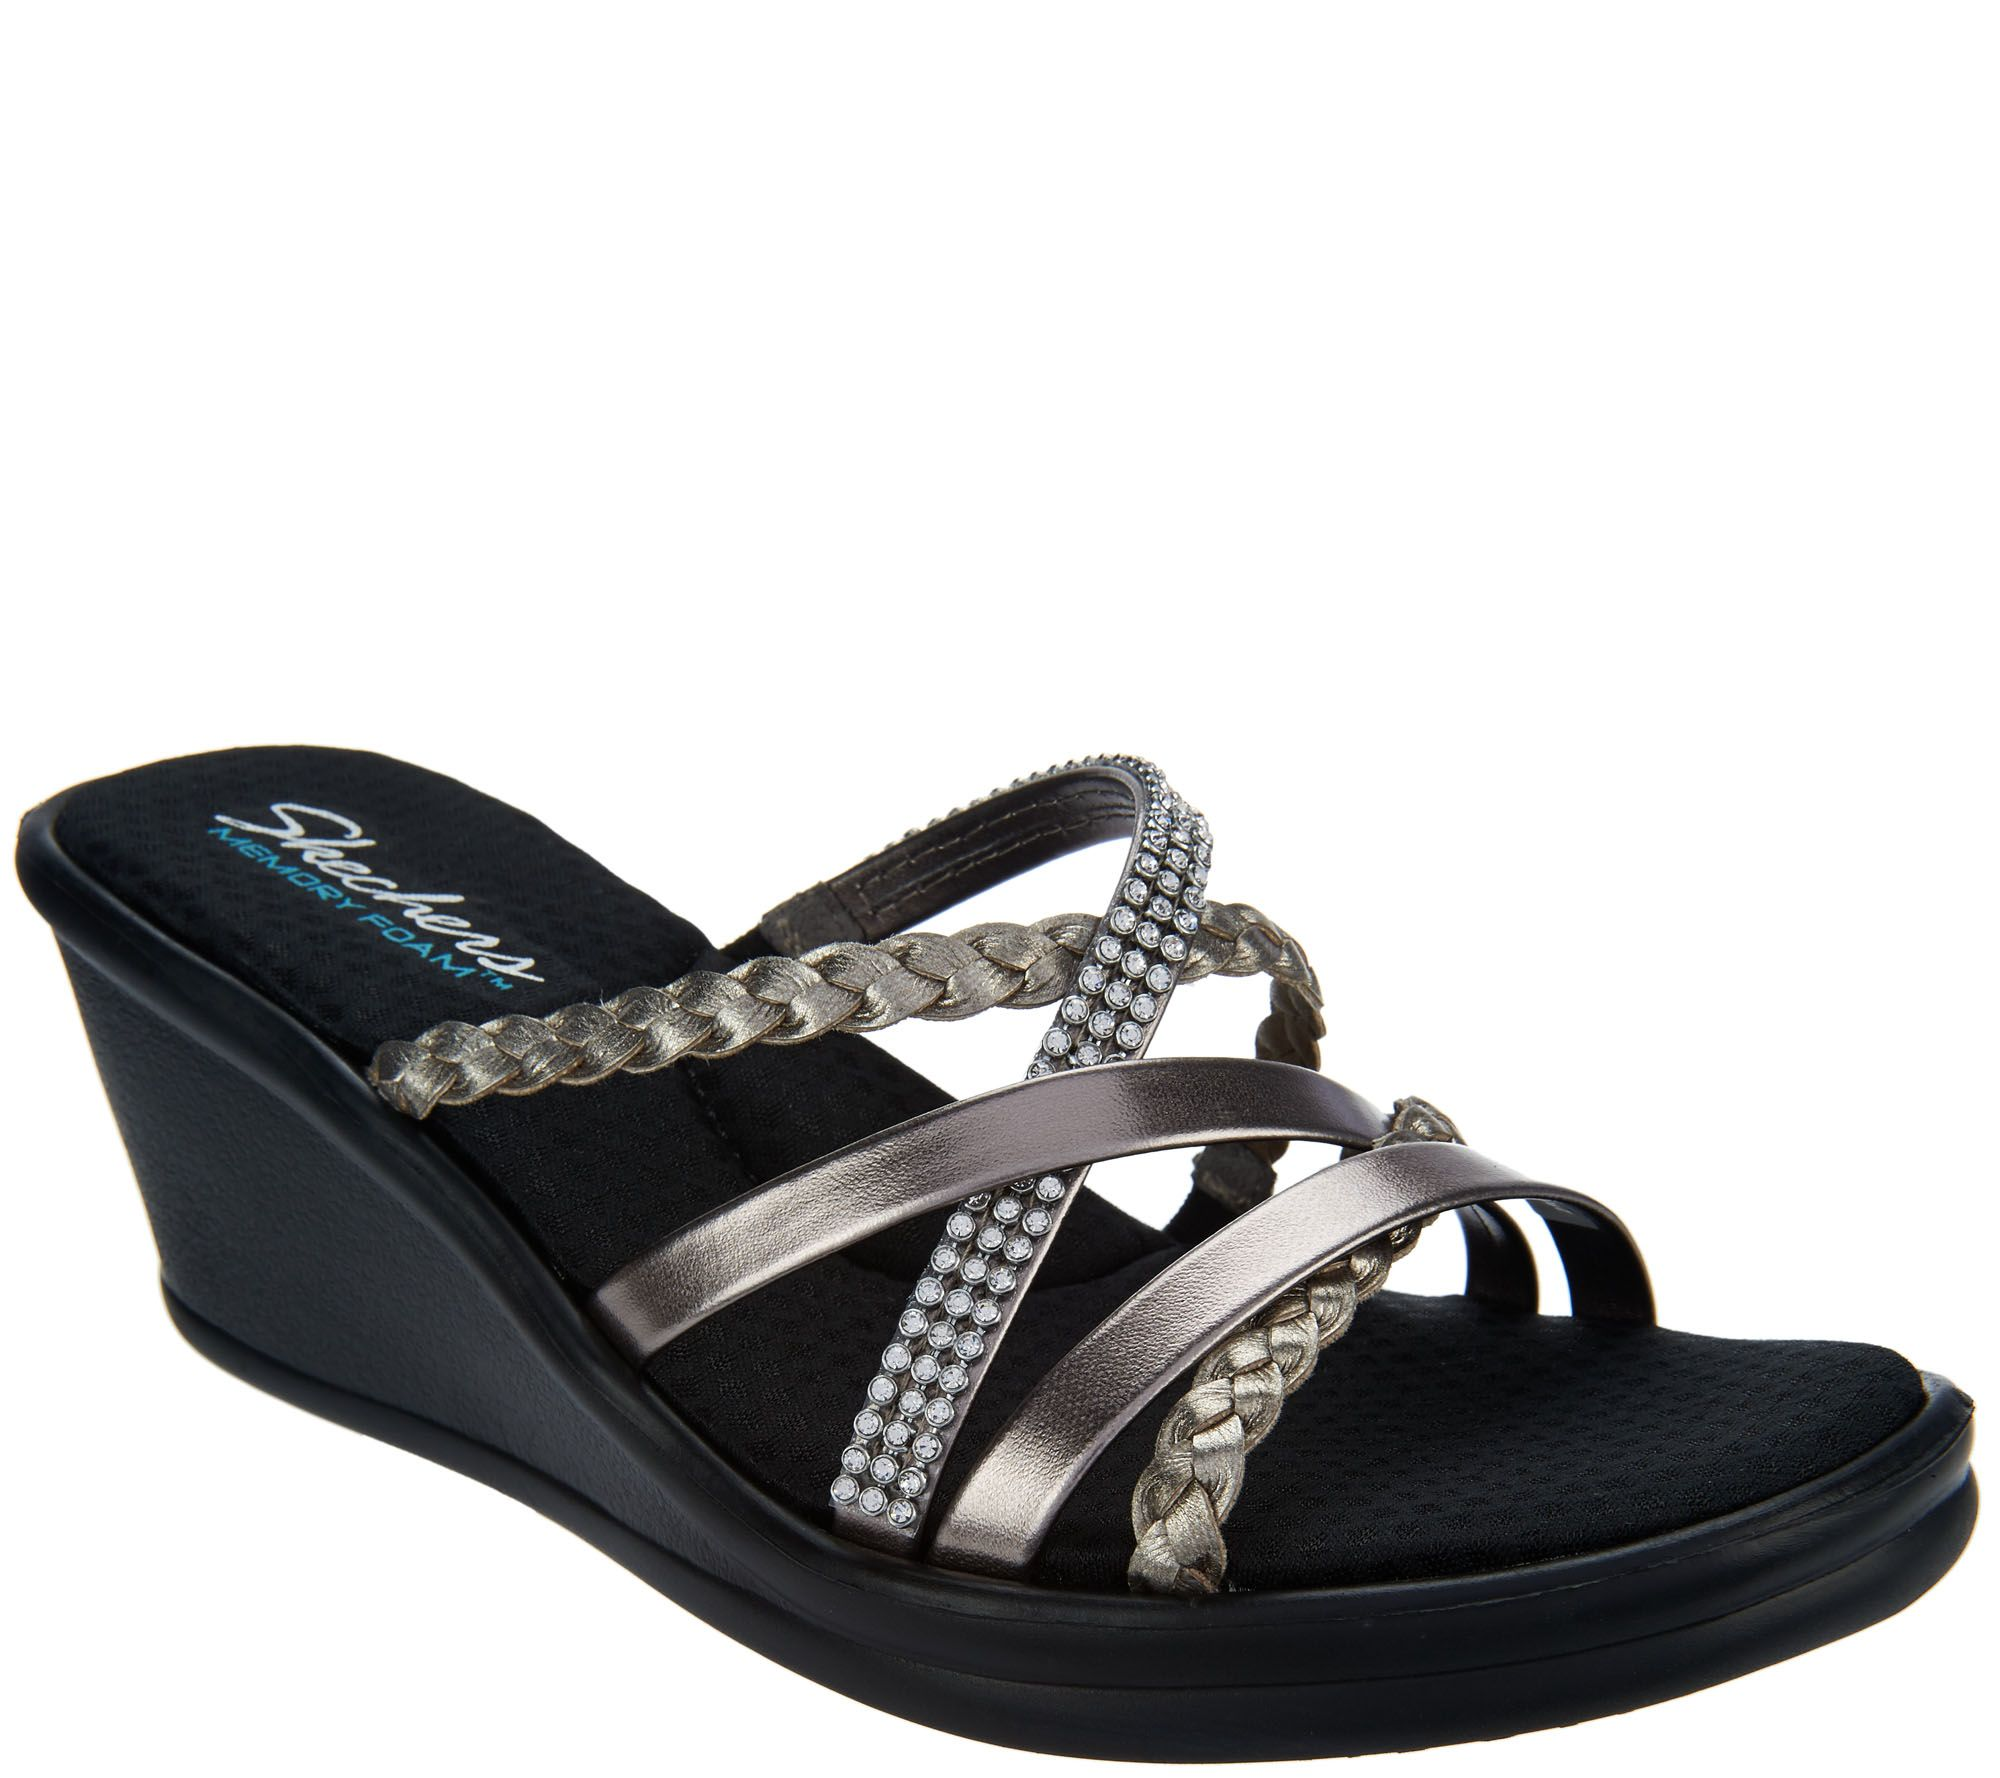 Skechers multi strap open toe wedge sandals wild child a287762